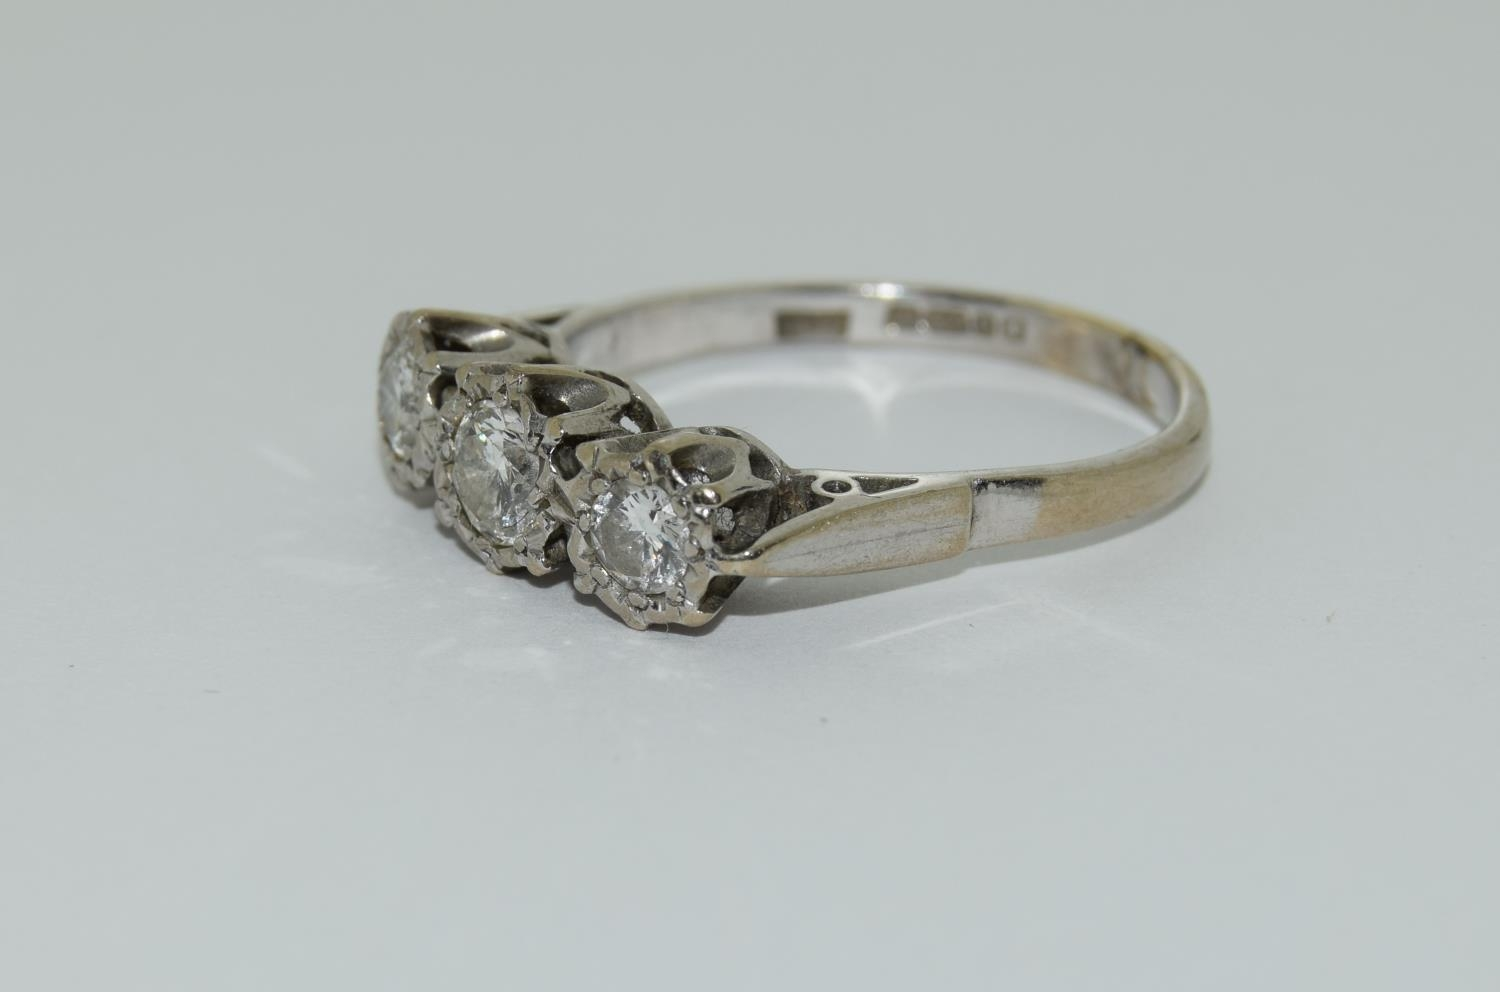 An 18ct white gold ladies three stone diamond ring approx 1ct Size Q. - Image 4 of 6